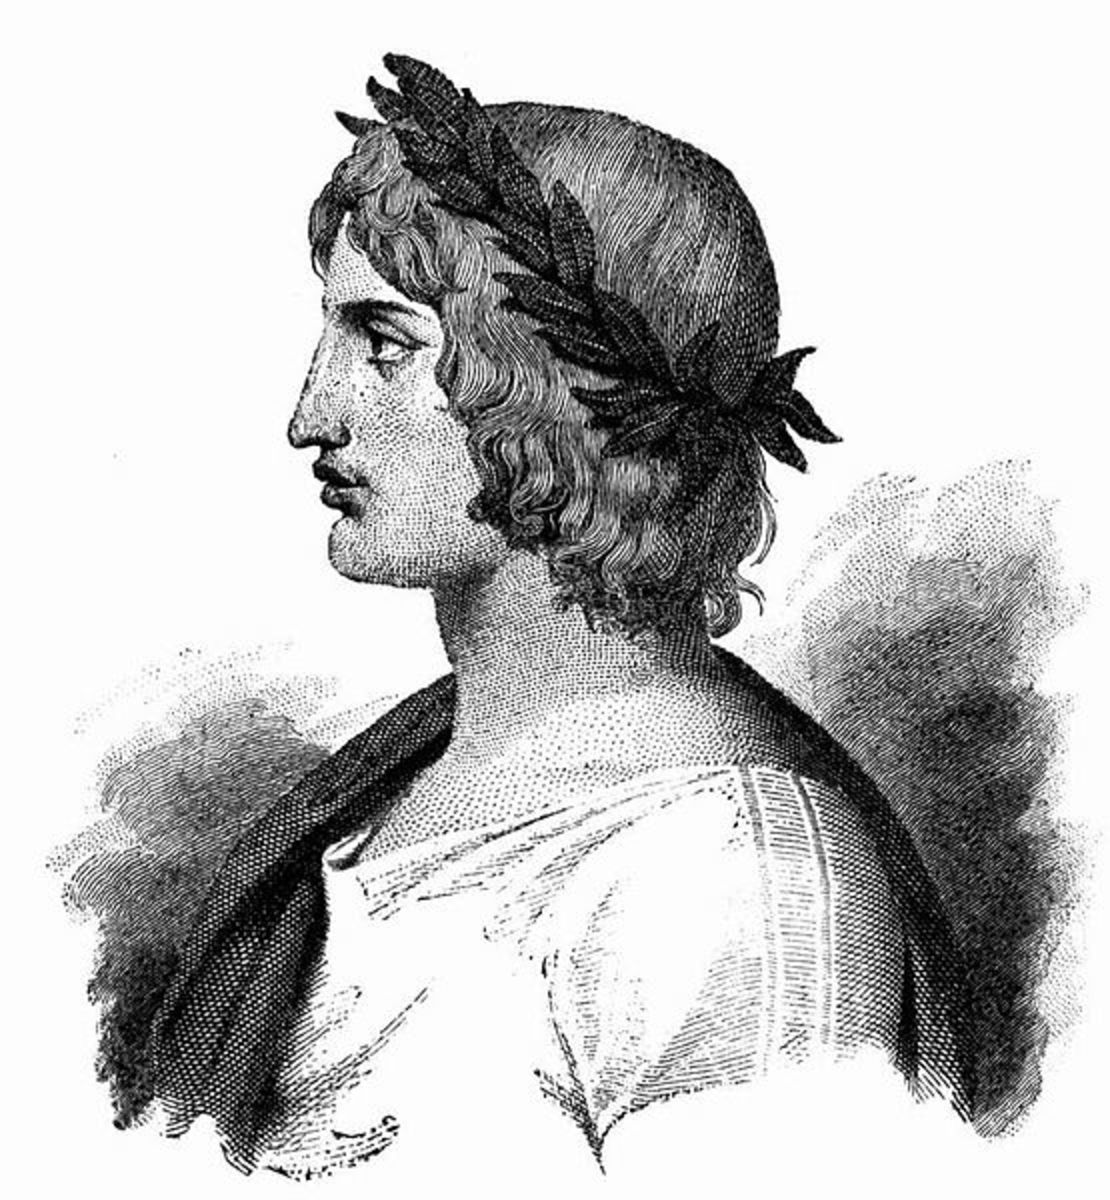 The famous poet Virgil